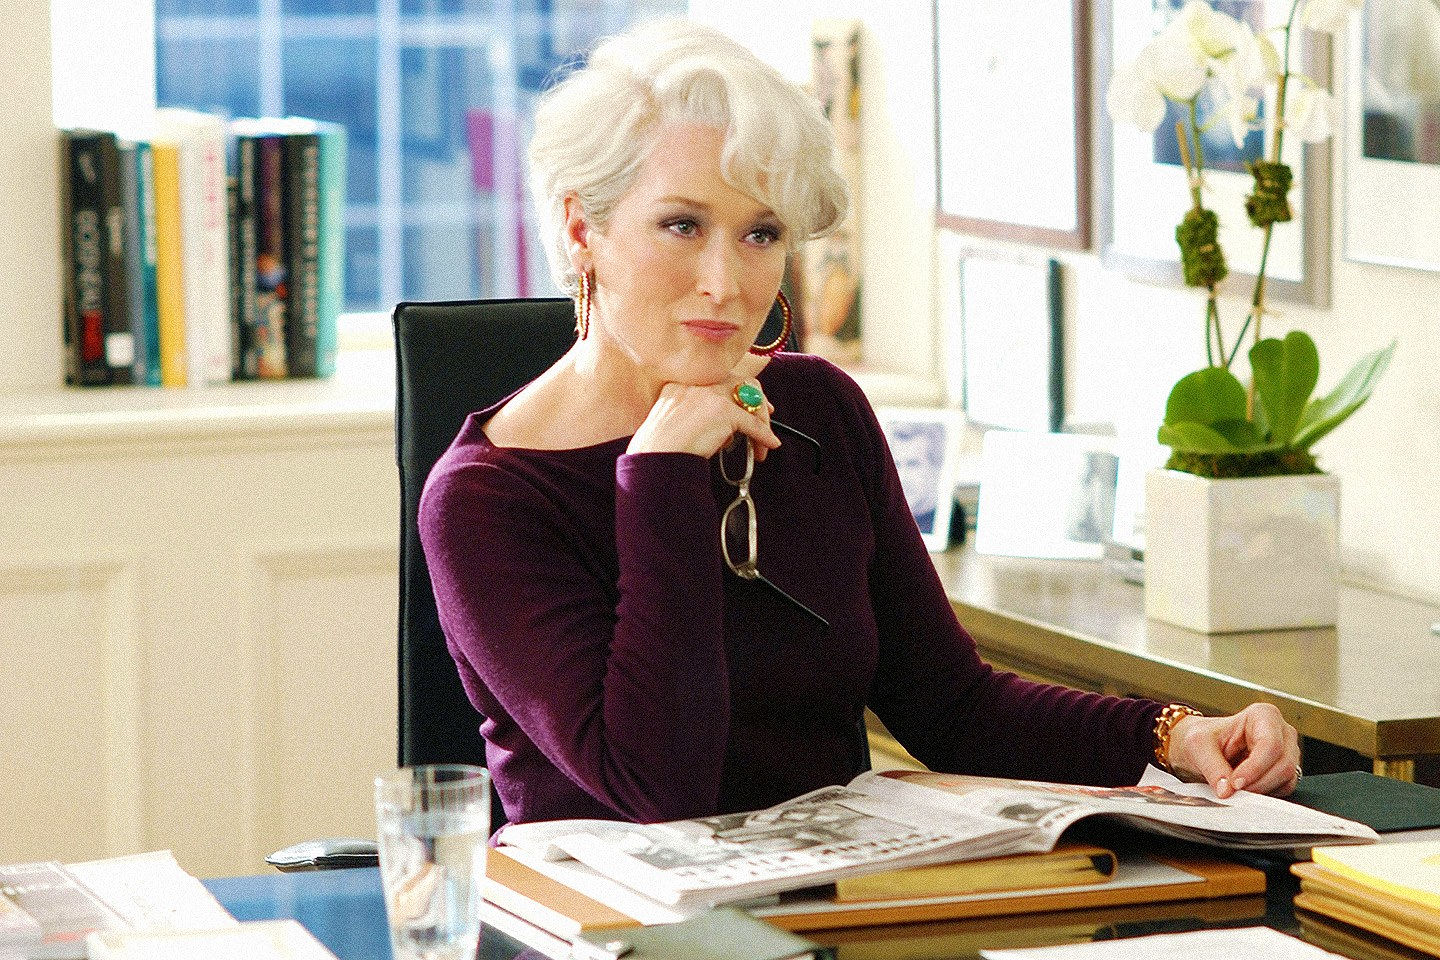 What's Meryl Streep's Real Name? This Birthday Girl Is Full of Surprises